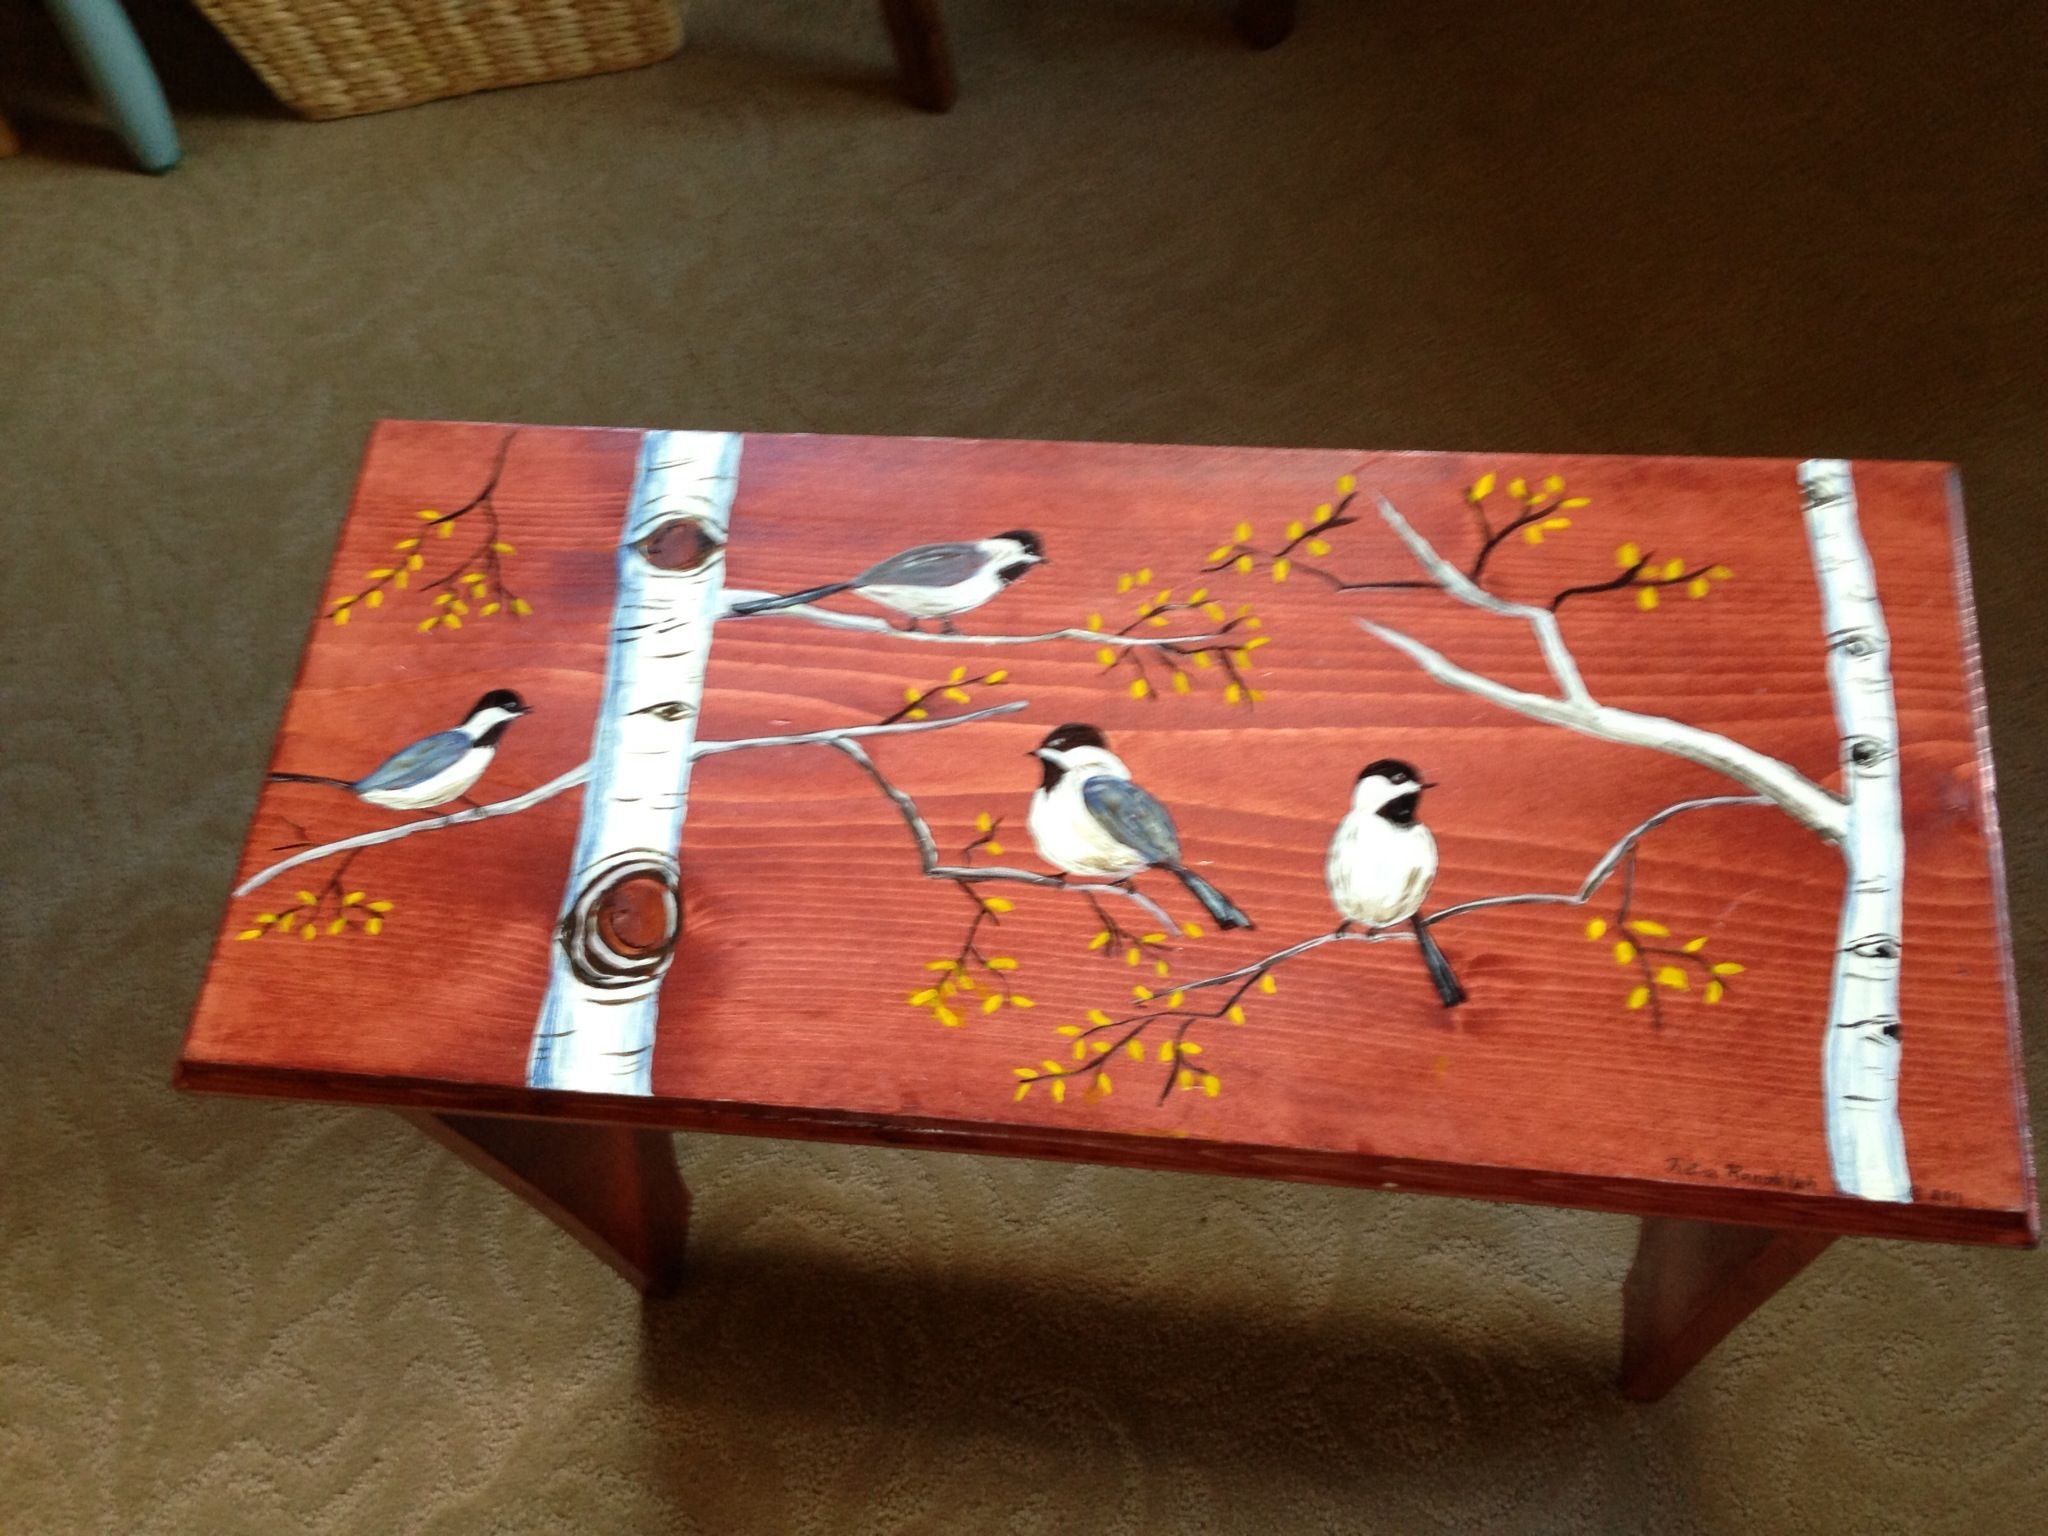 Painted Furniture Ideas Painted Bench Rita's Art  Pinterest  Painted Benches Paint